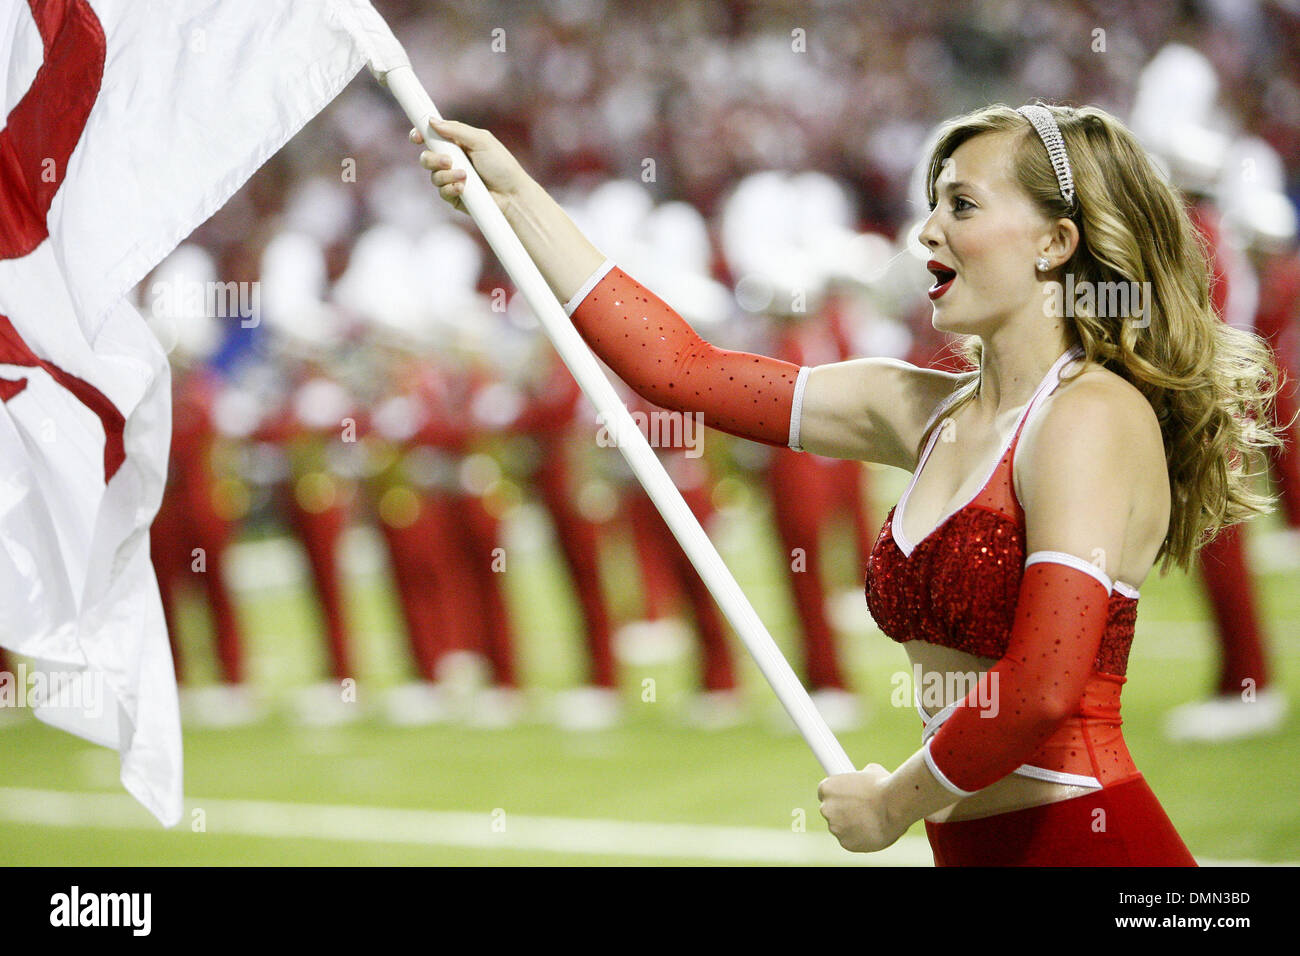 Sep 05, 2009 - Atlanta, Georgia, USA - NCAA Football - A University of Alabama flag girl waves her flag before the start of Alabama's season opener against Virginia Tech in the Georgia Dome. (Credit Image: © Josh D. Weiss/ZUMA Press) - Stock Image